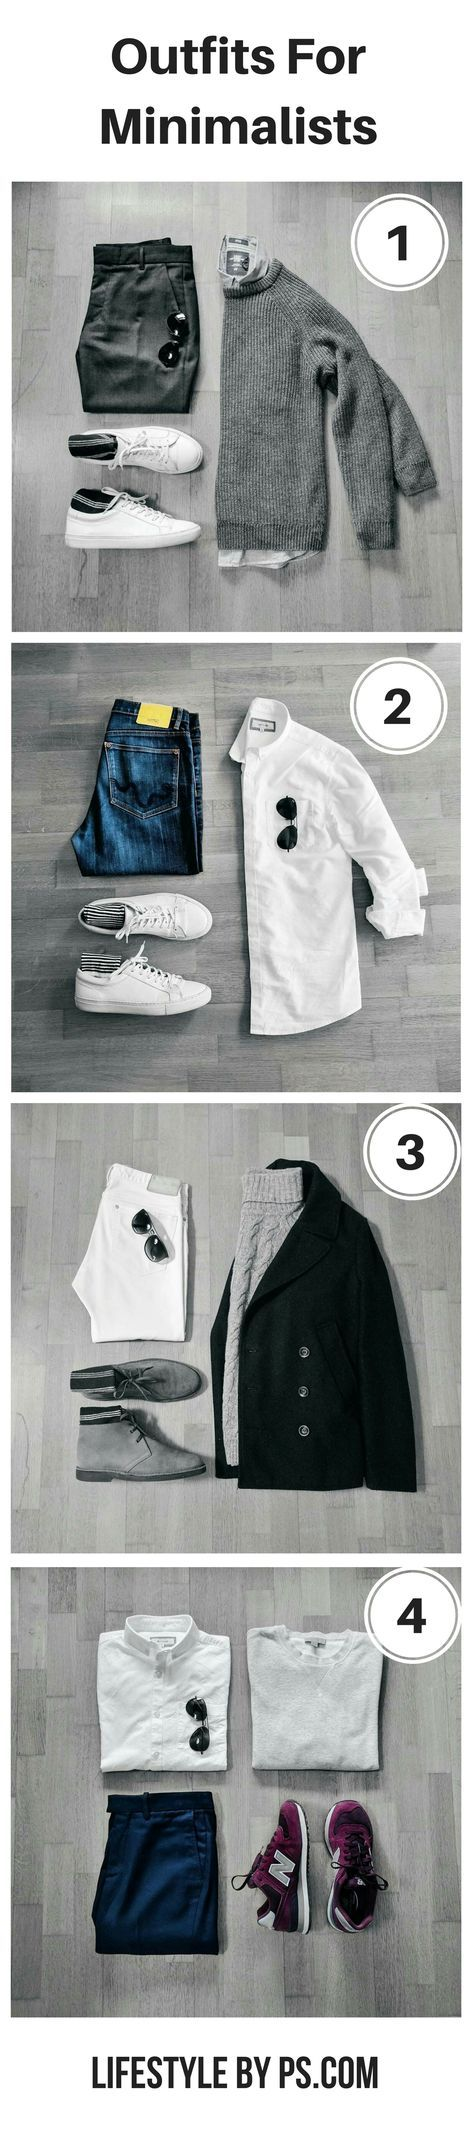 Outfits For Minimalists. #mens #fashion